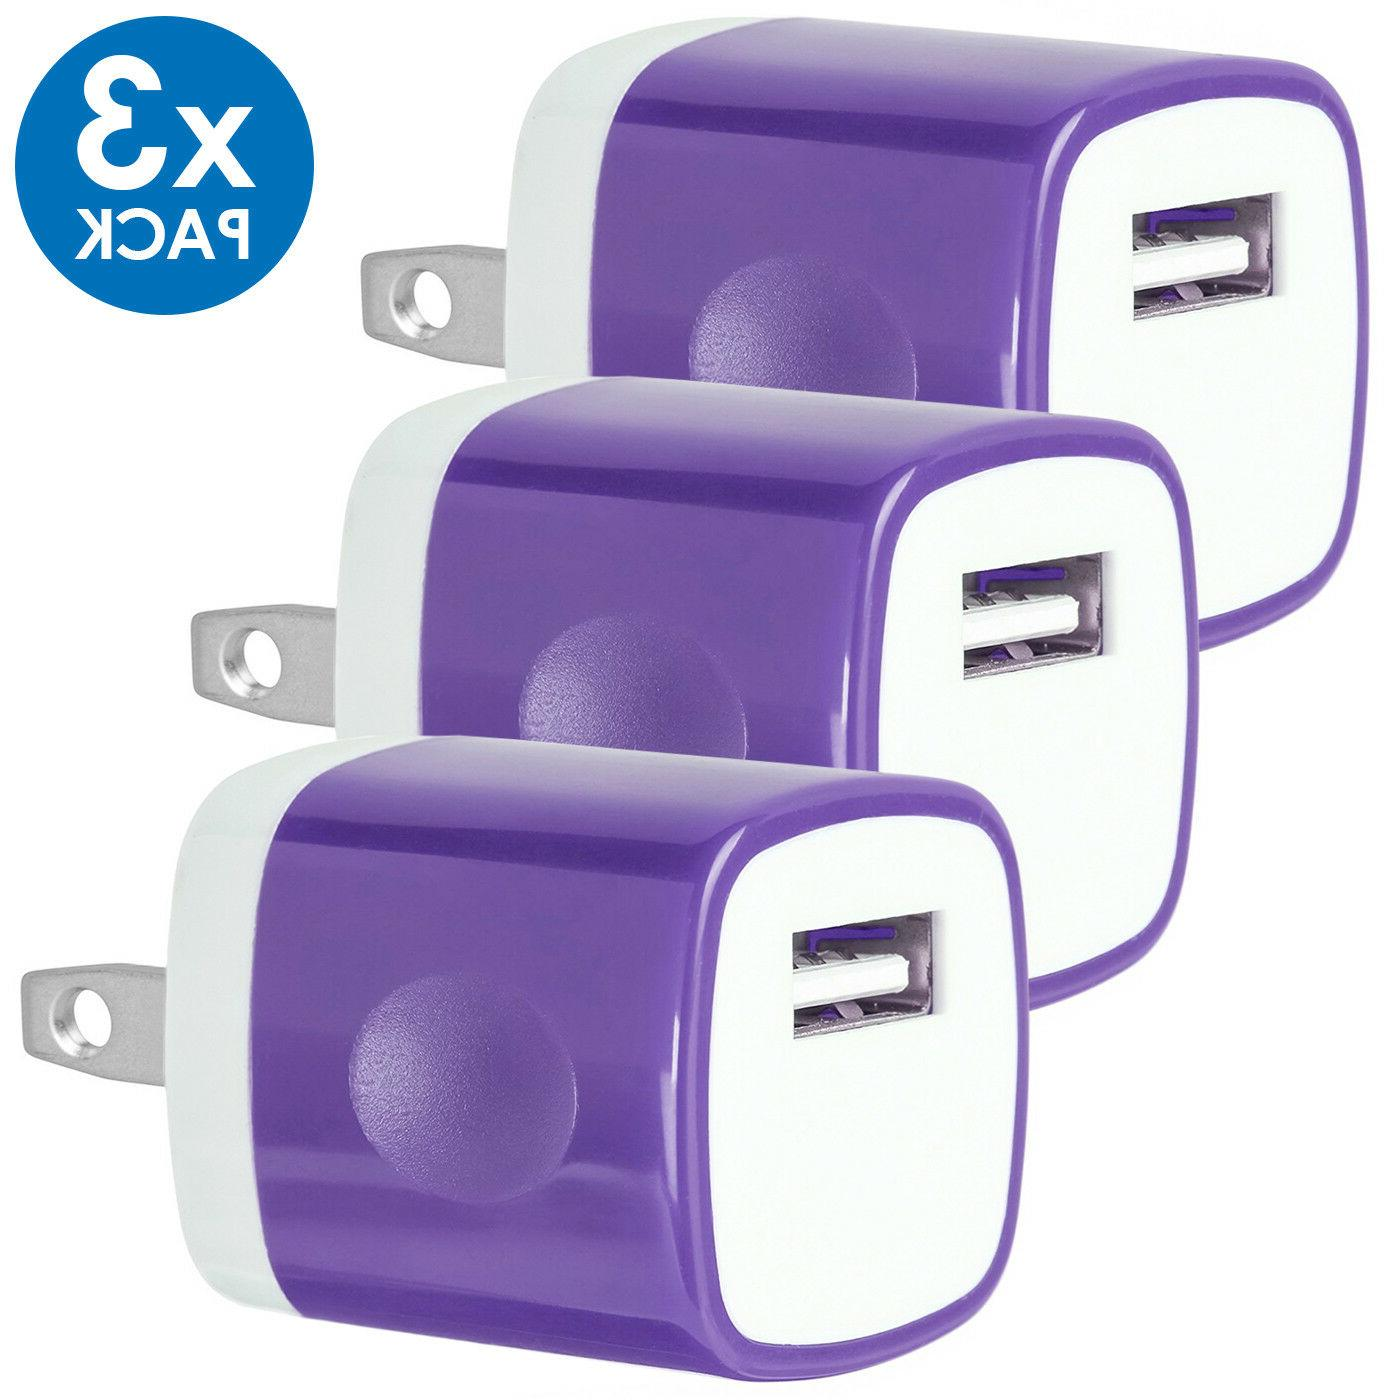 3-PACK USB Wall Charger AC Adapter US Plug iPhone 8 X Xs LG